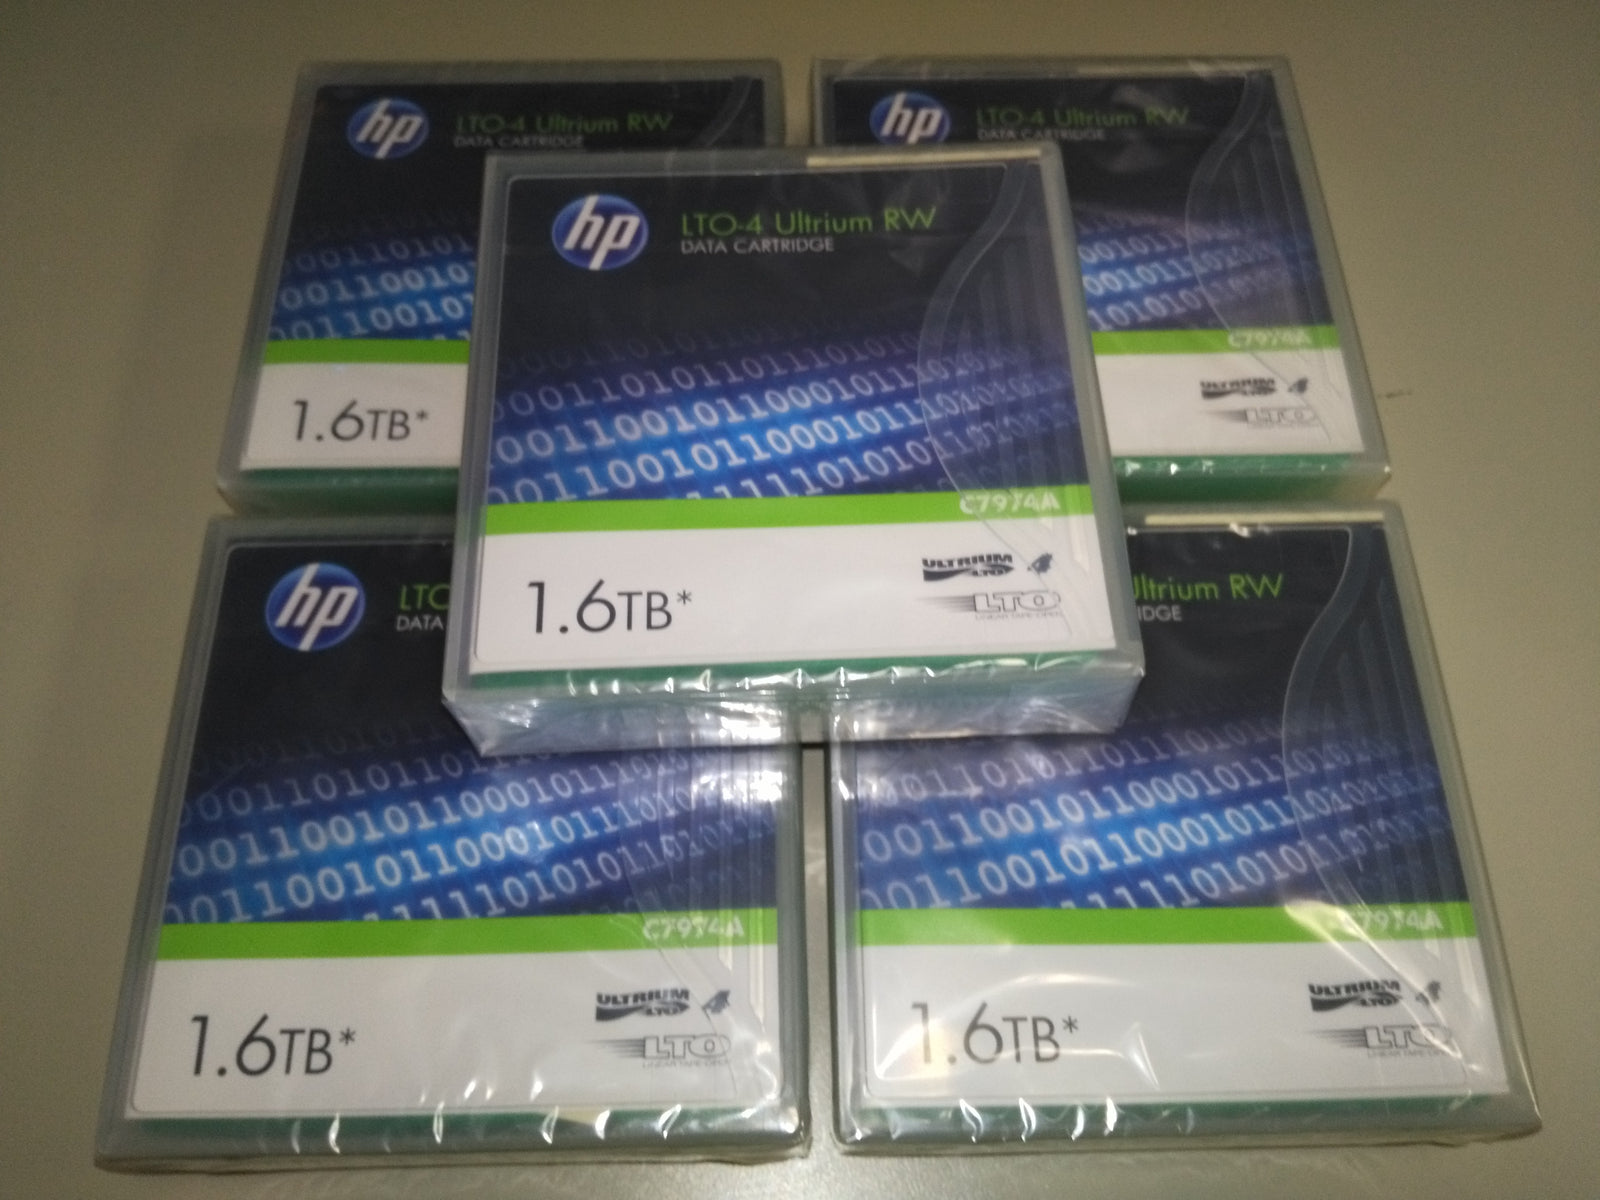 8x HP LTO-4 Ultrium RW Data Cartridge 1.6TB Backup Tape C7974A (New Sealed)